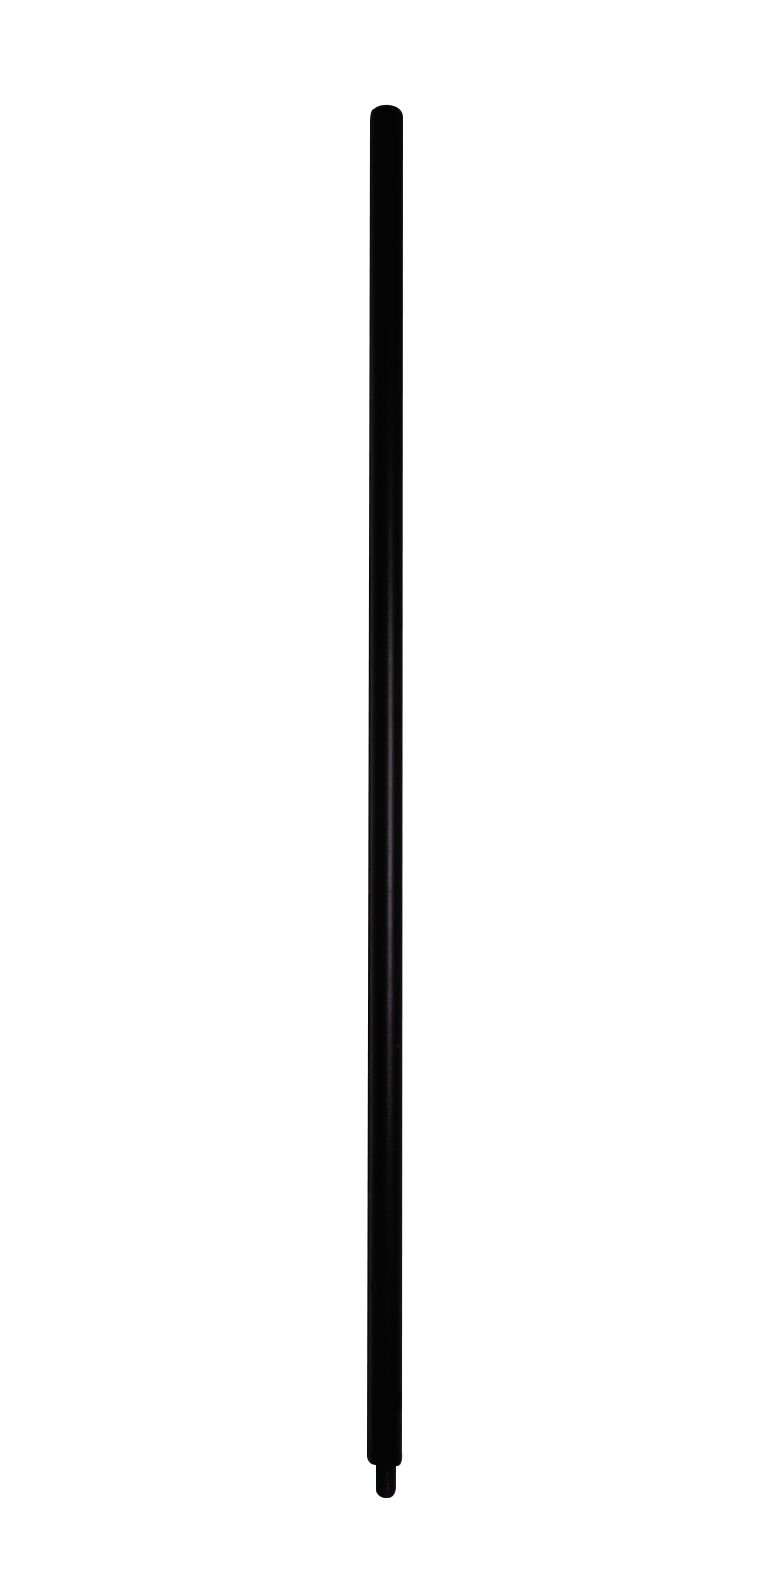 Dalvento Powder Coated  Steel Rod for Weathervanes and Finials, 30-Inch